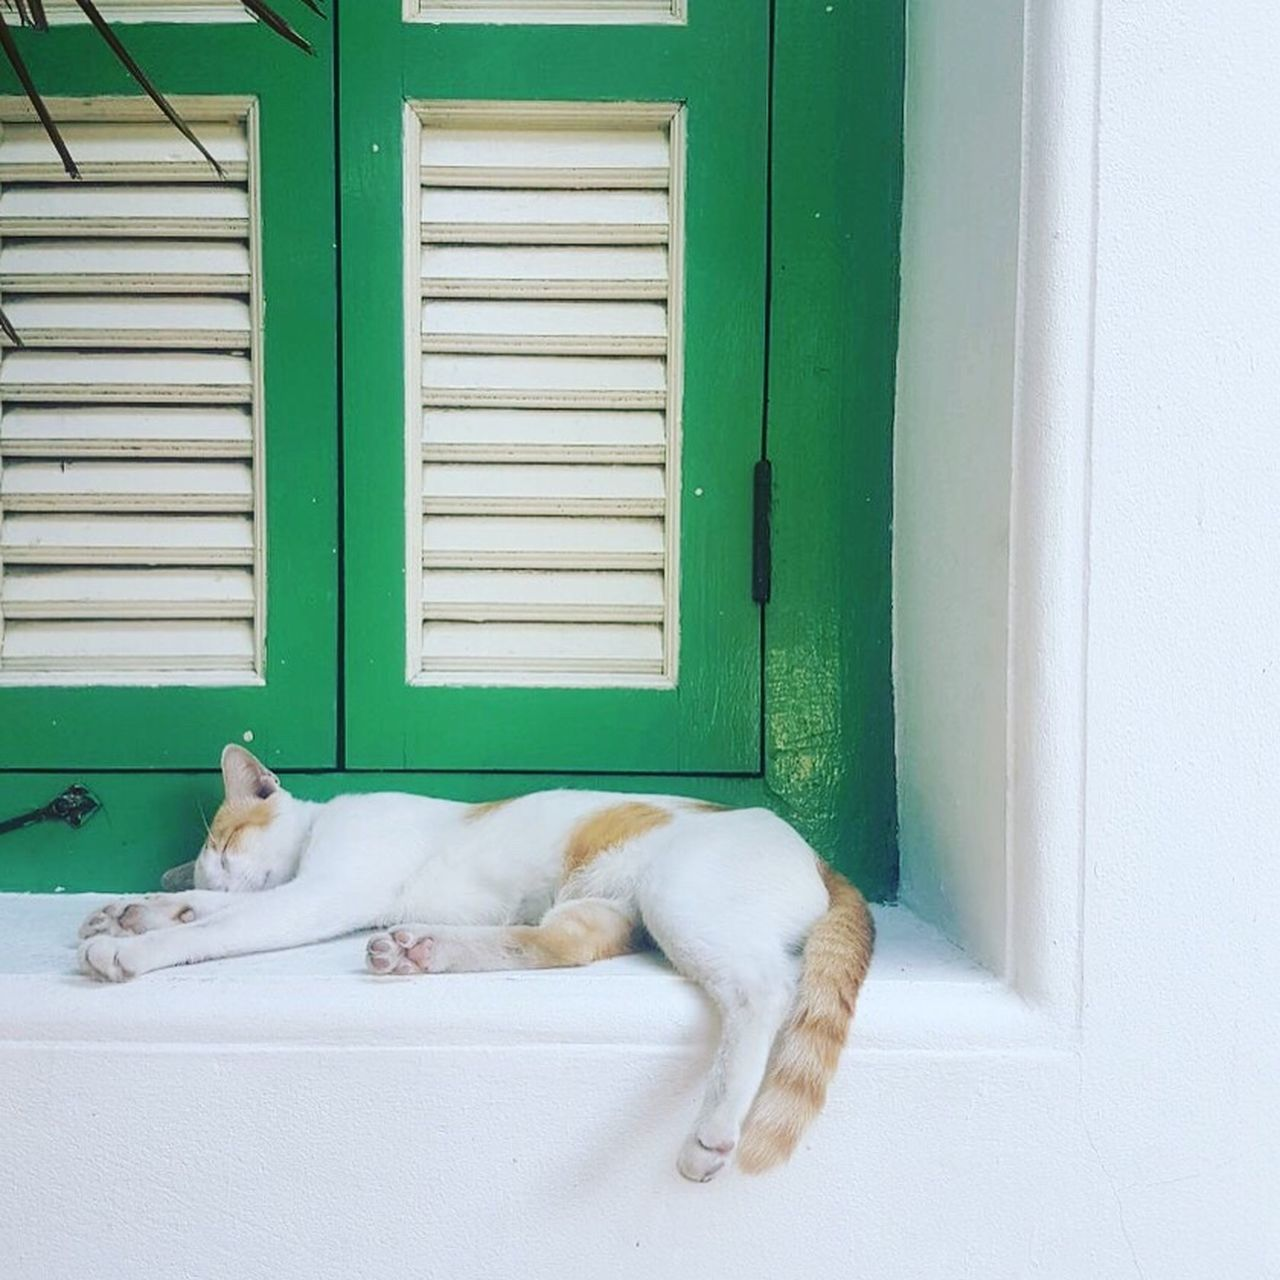 pets, one animal, white color, animal themes, mammal, domestic animals, sleeping, house, window, door, relaxation, dog, day, no people, domestic cat, indoors, architecture, full length